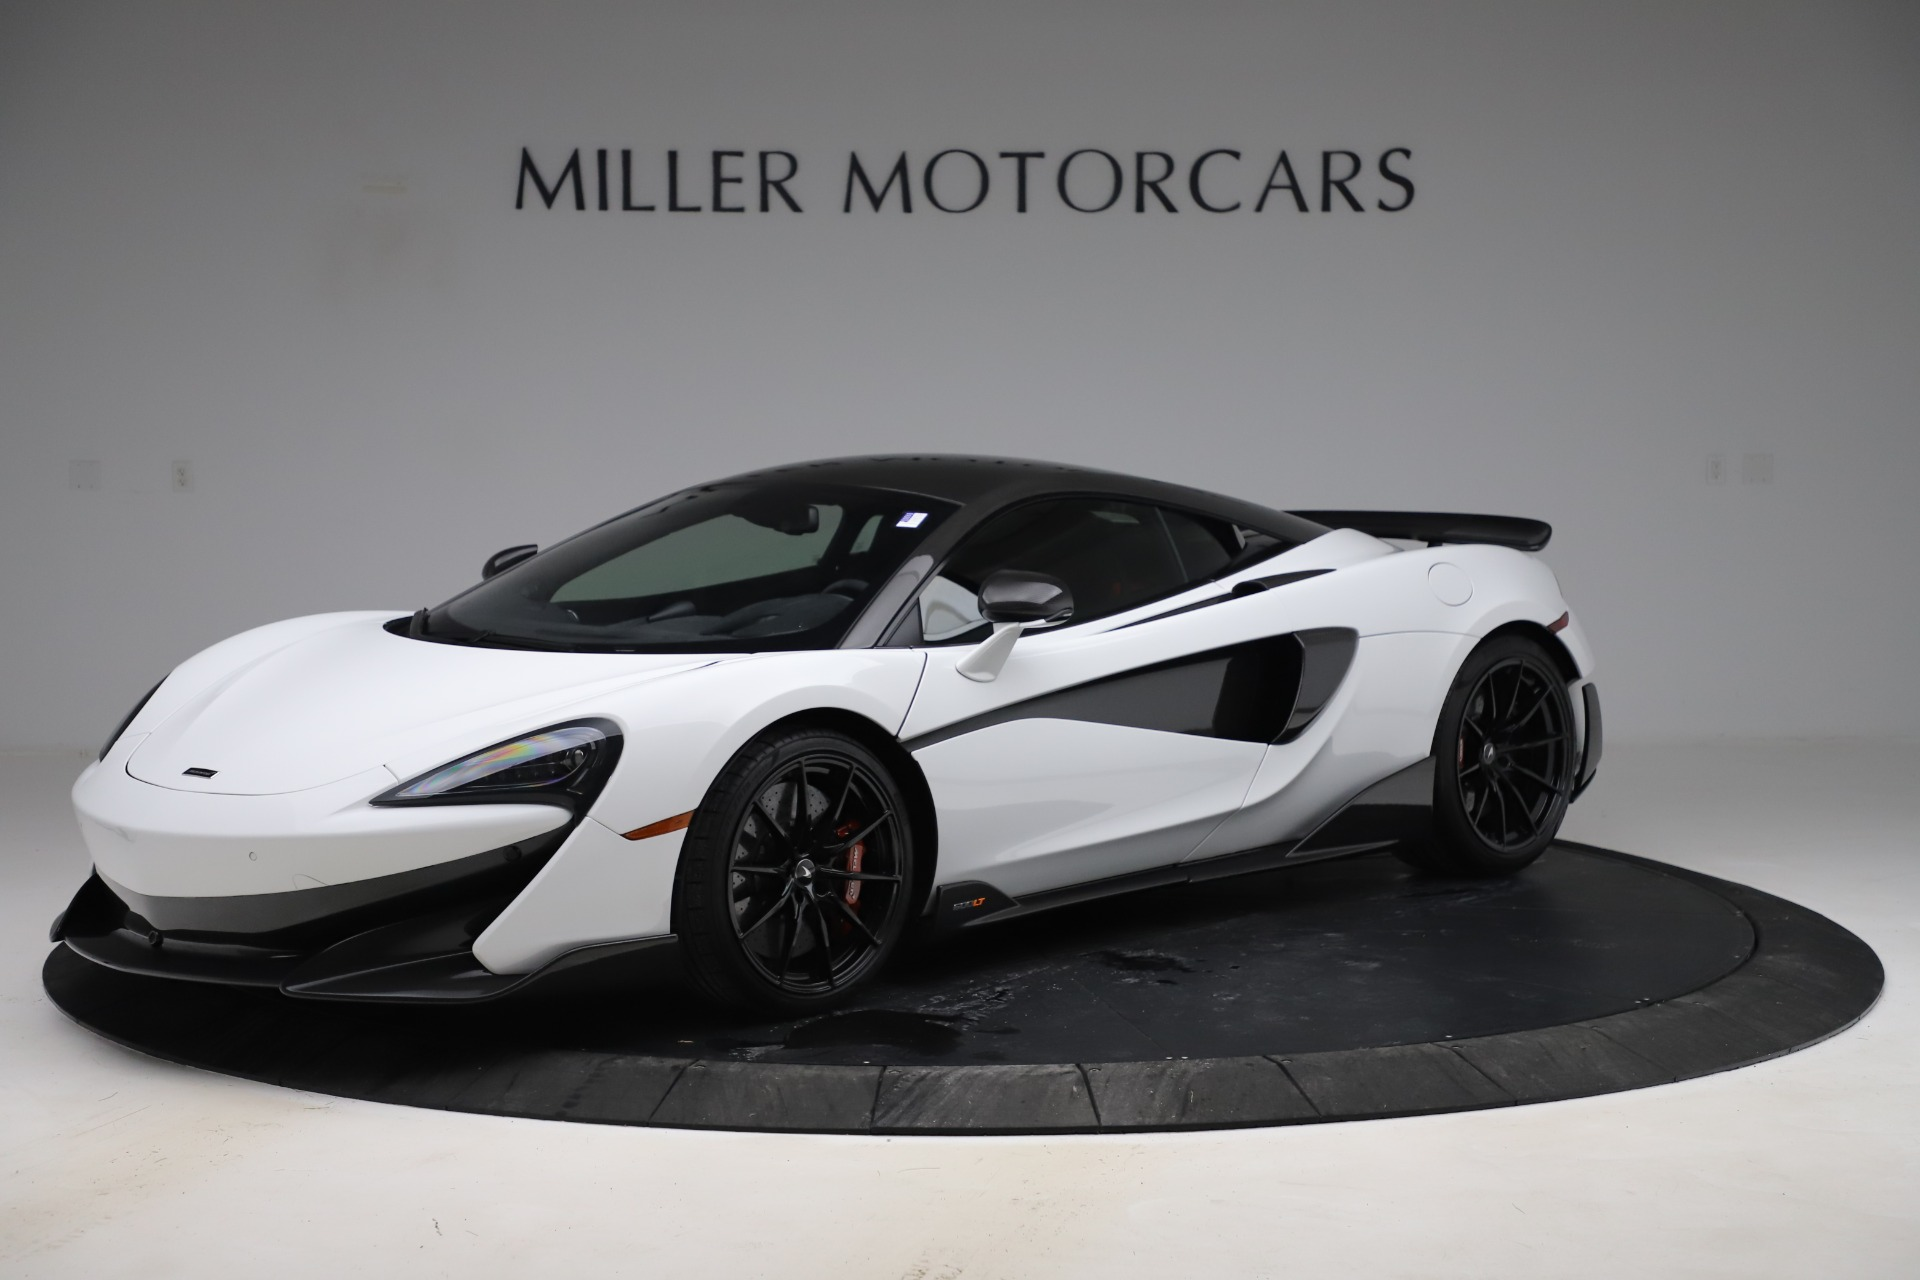 Used 2019 McLaren 600LT Coupe for sale $237,900 at Aston Martin of Greenwich in Greenwich CT 06830 1